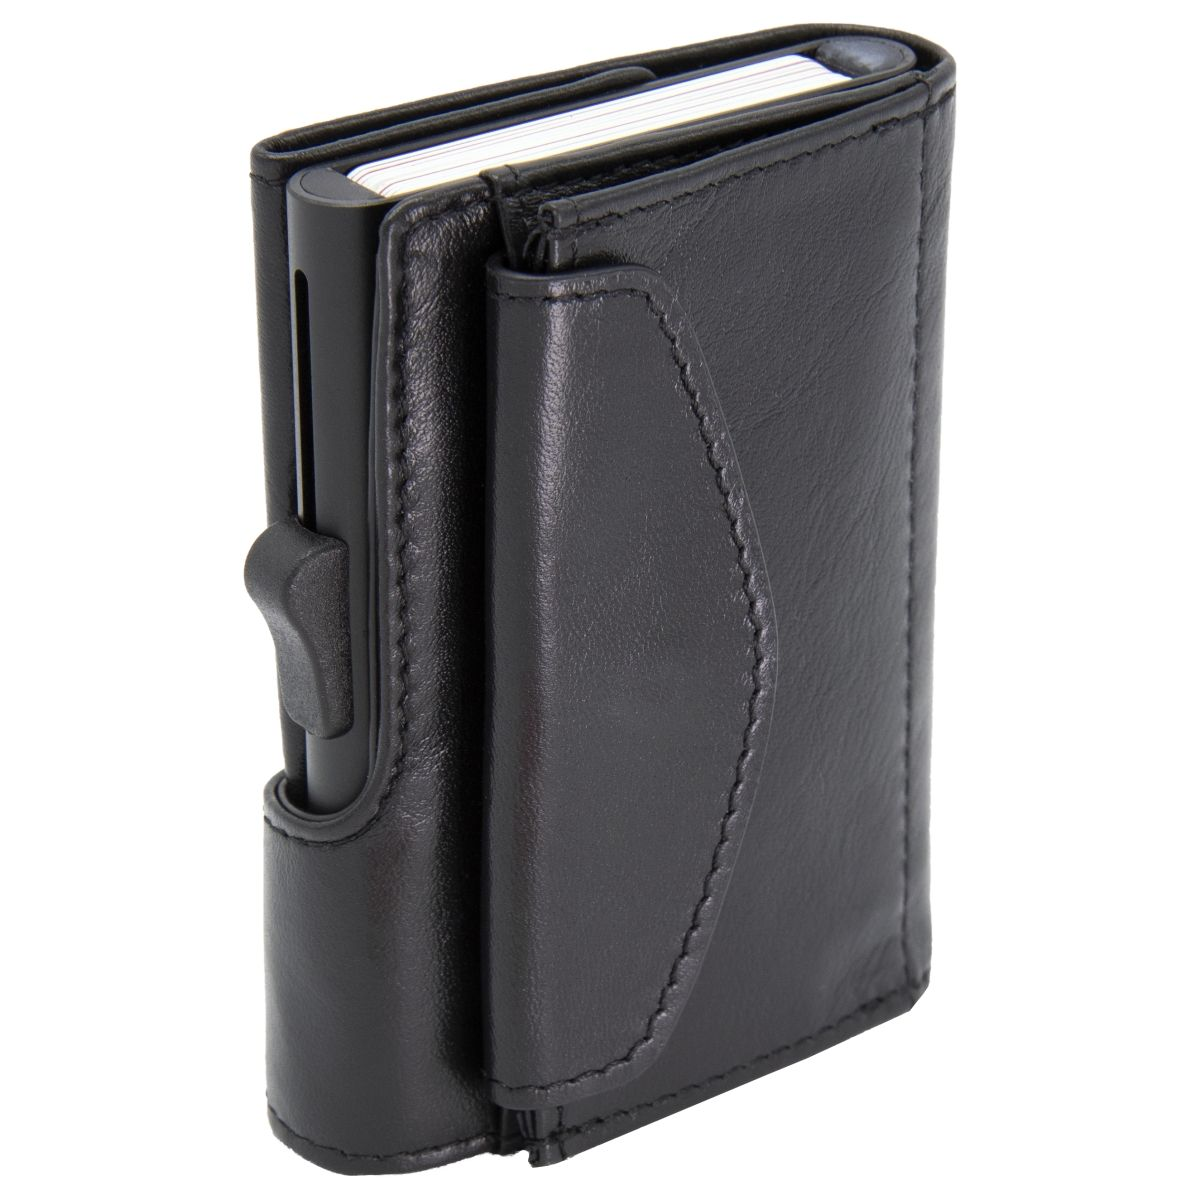 XL Aluminum Wallet with Genuine Leather and Coins Pocket - Black